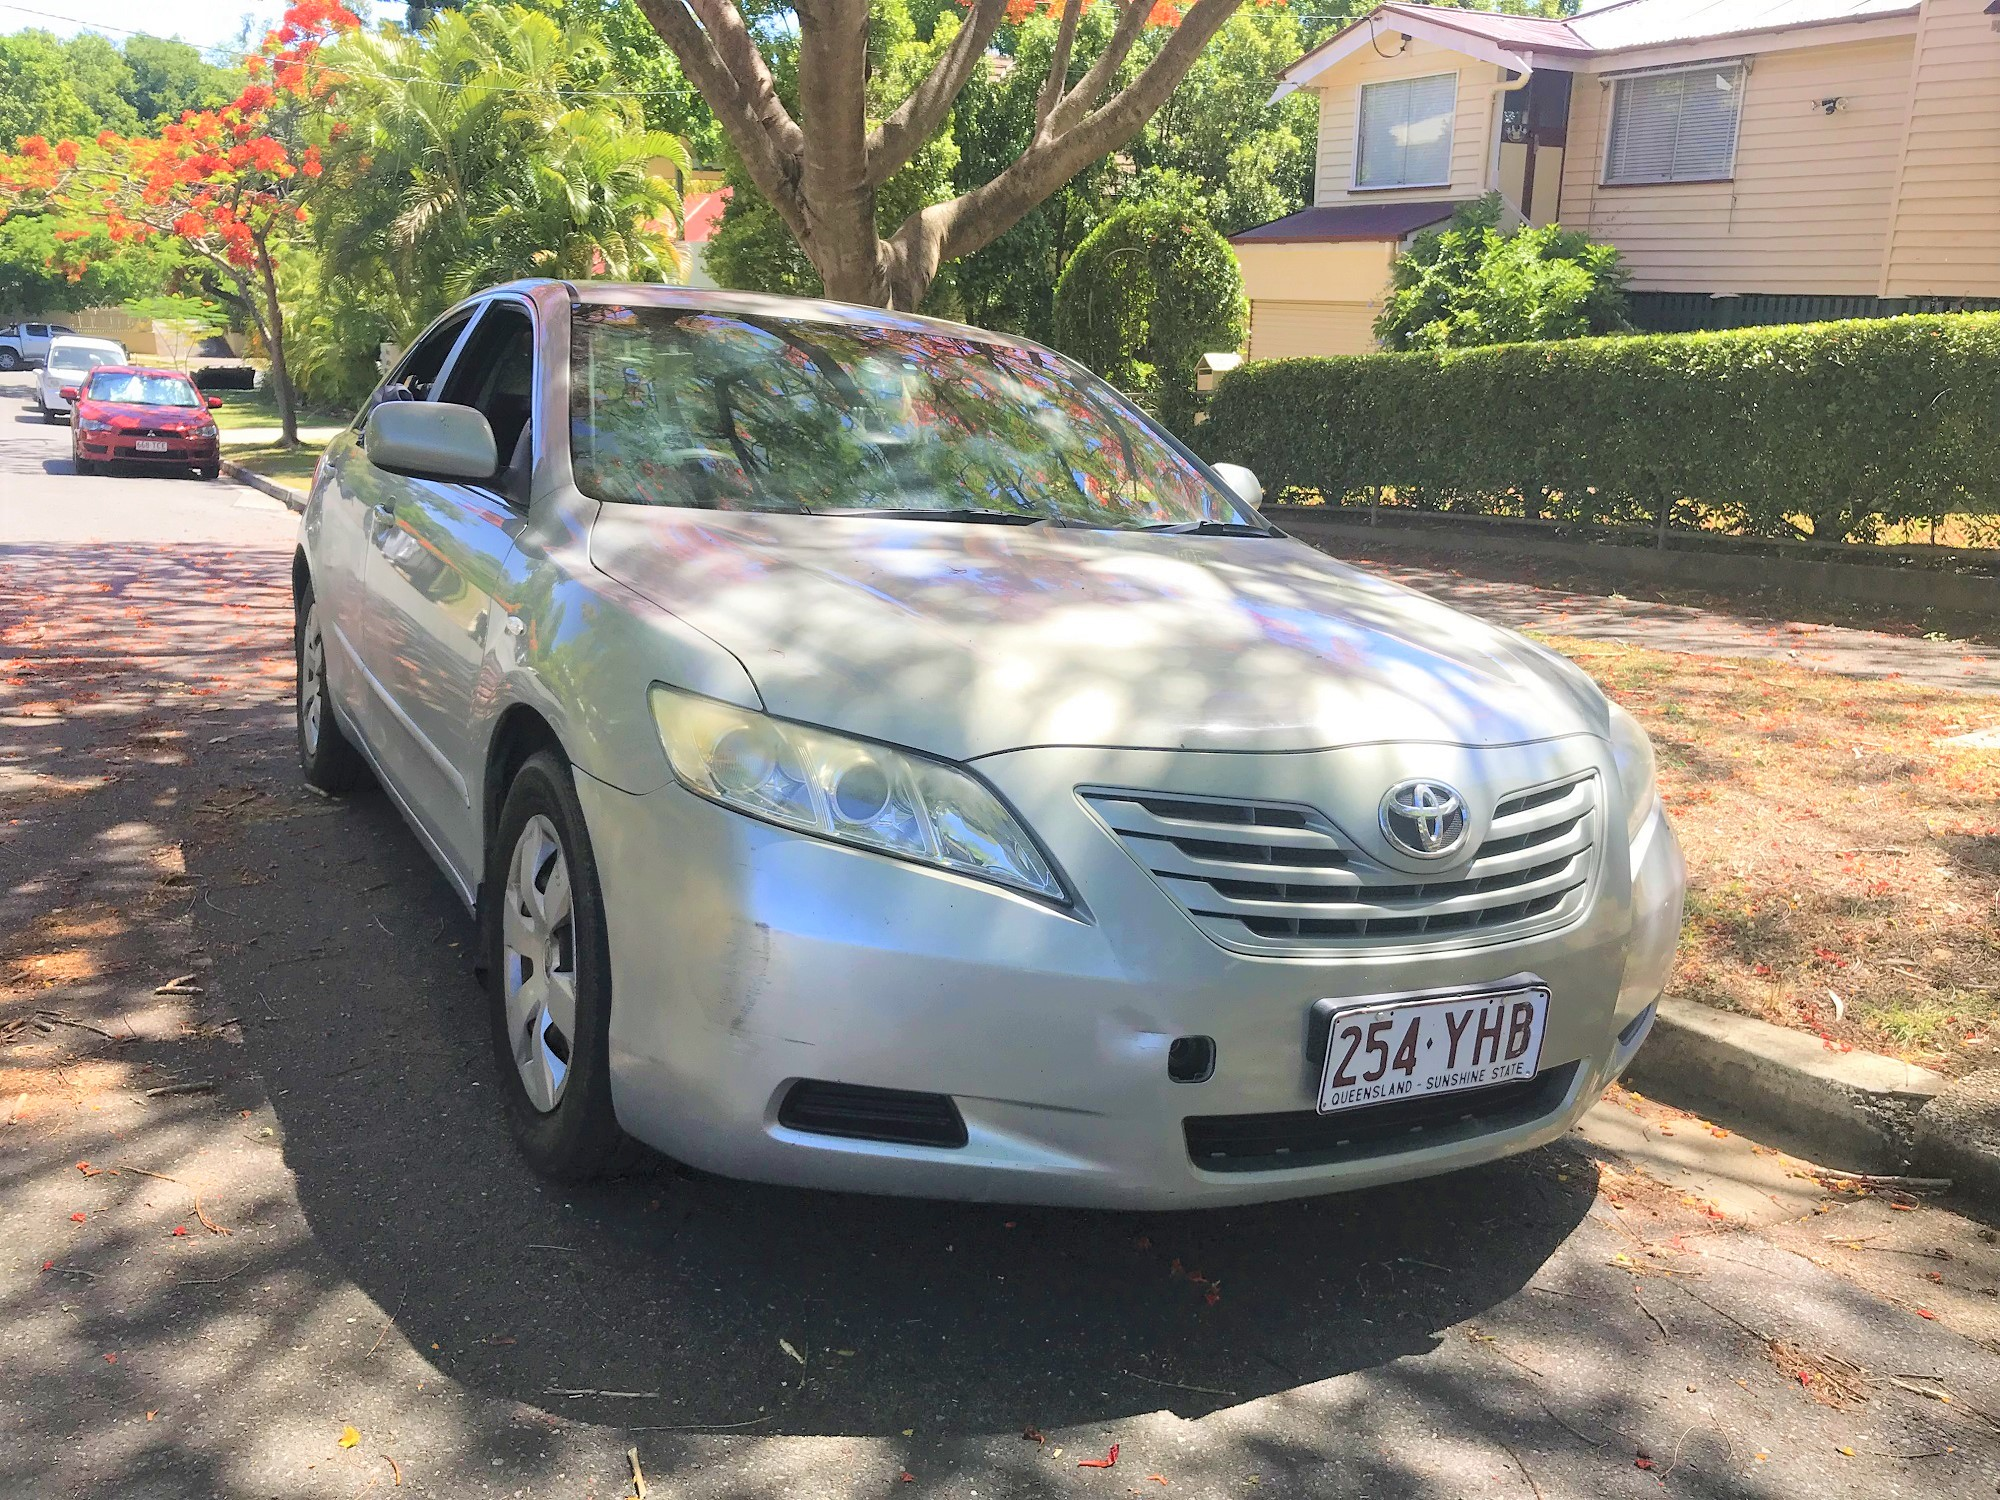 Picture of Truc's 2008 Toyota Camry